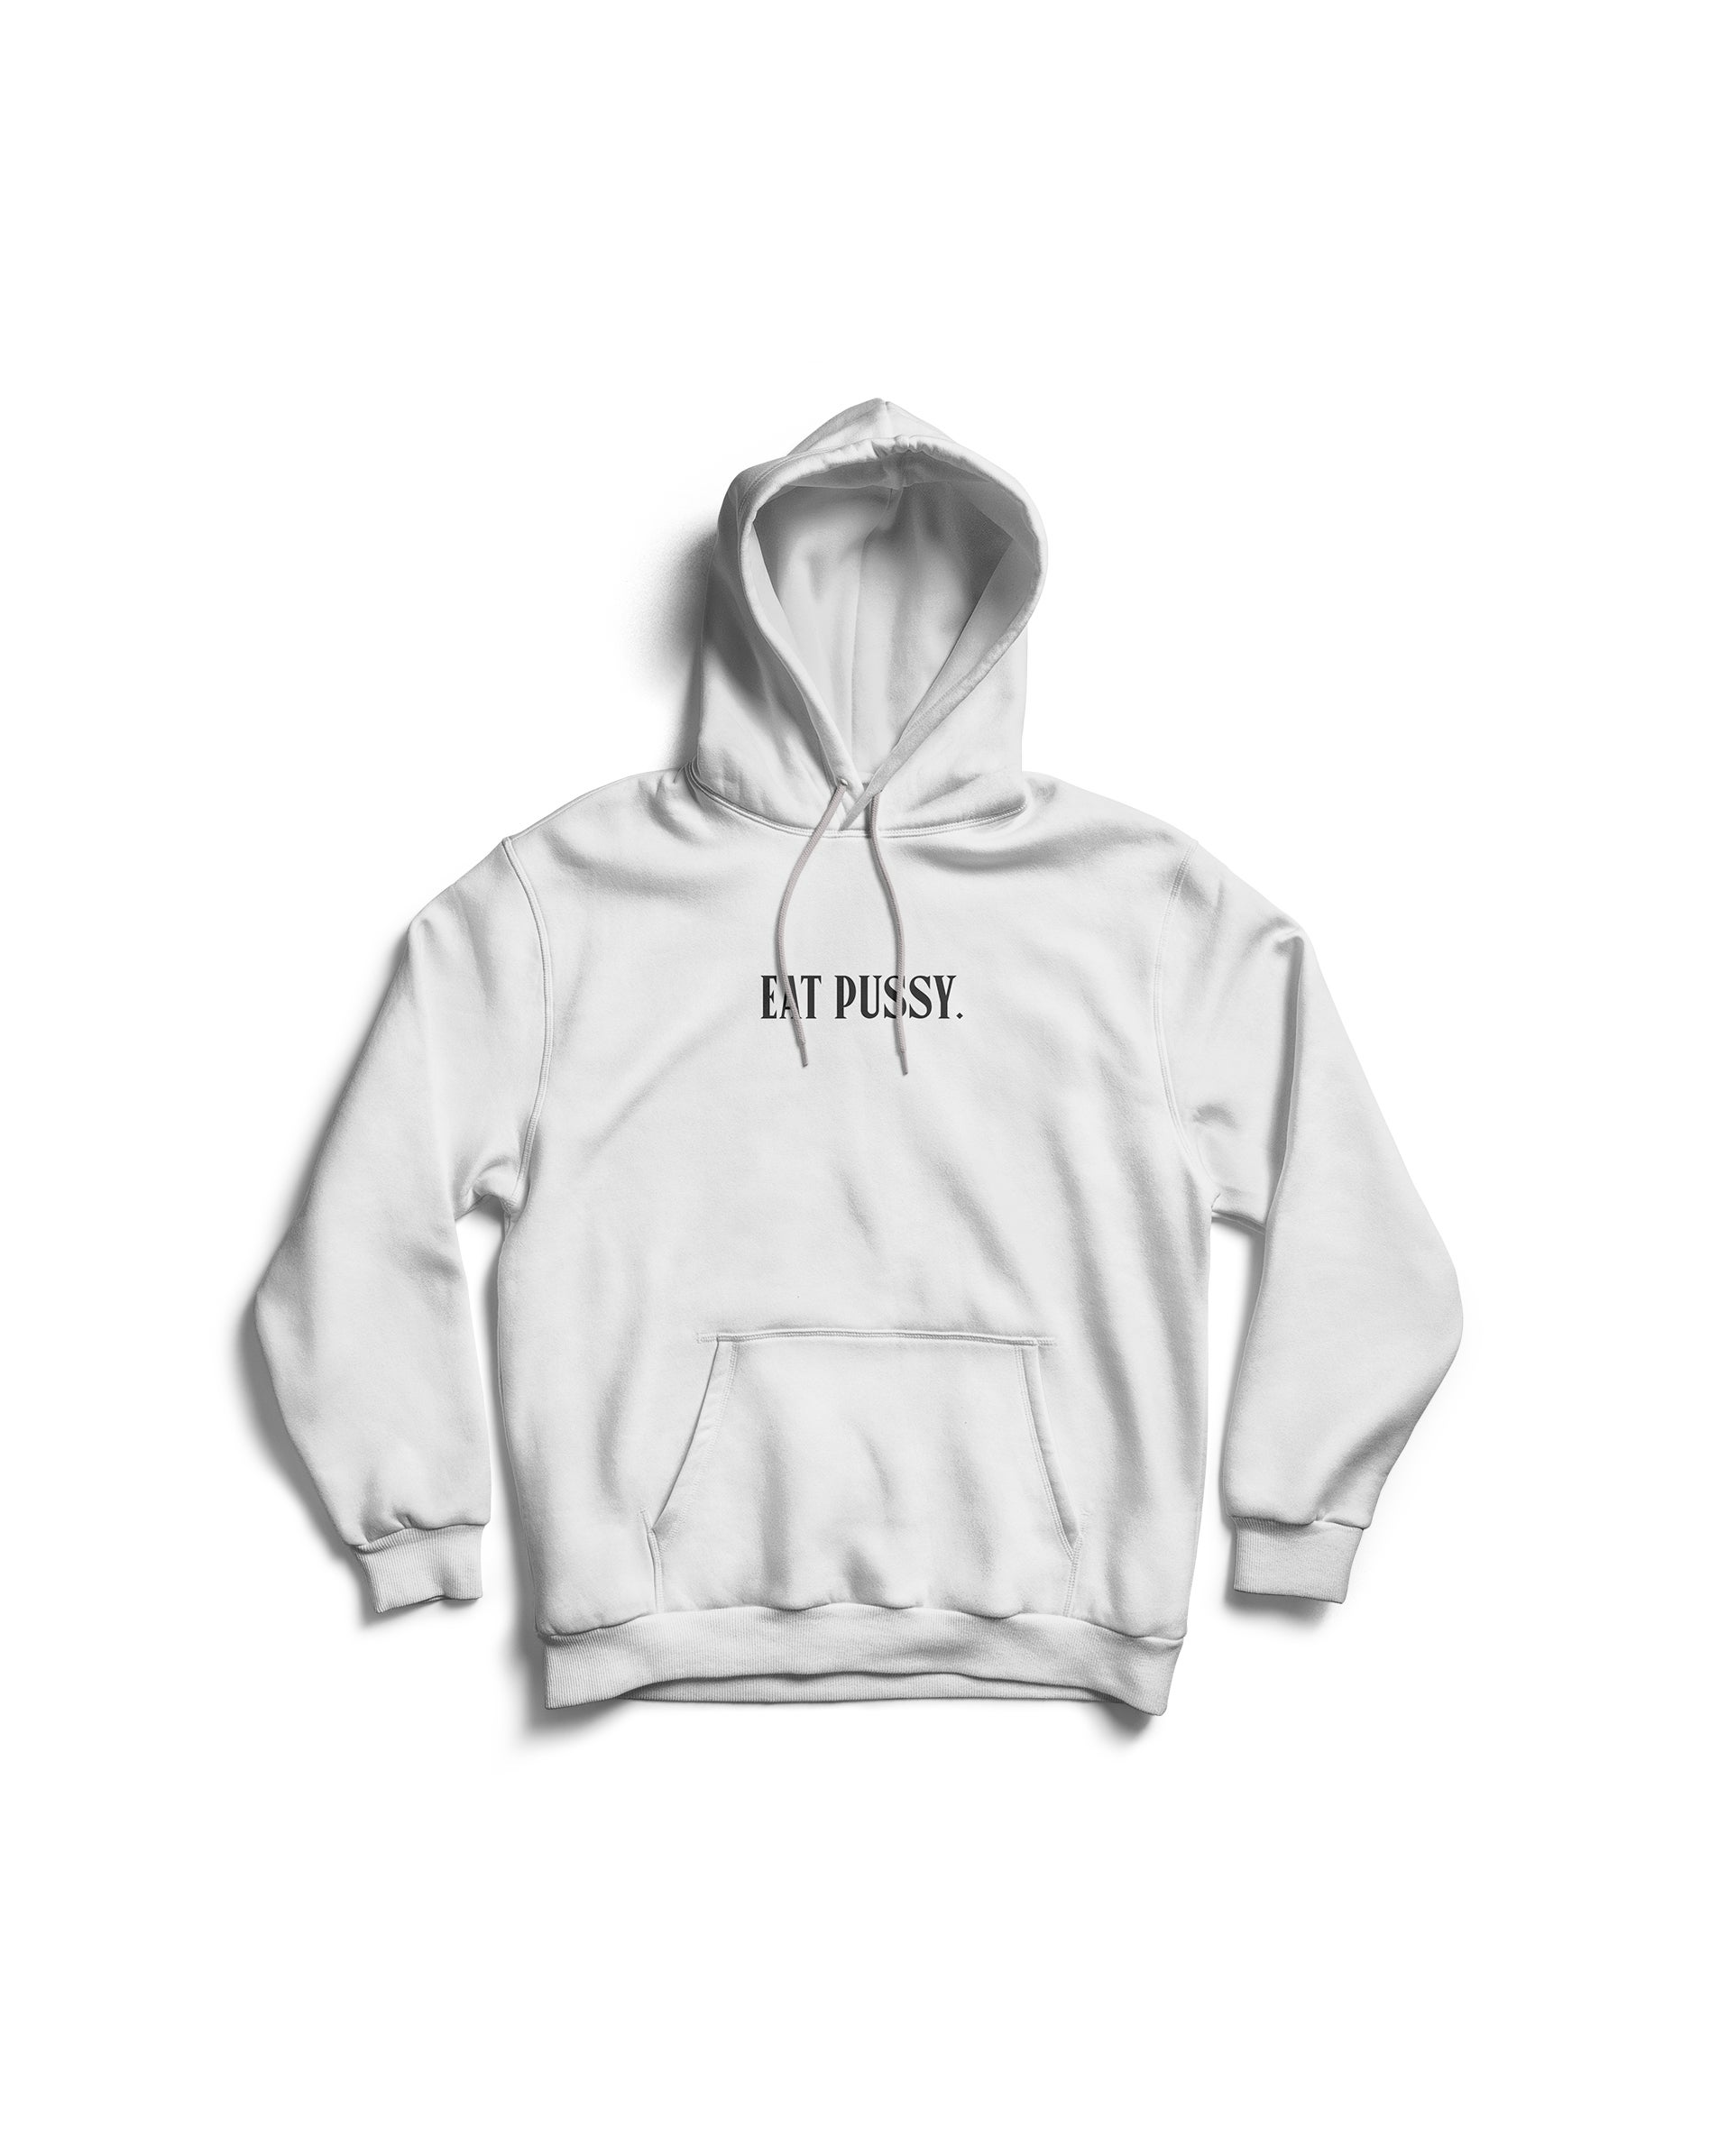 Image of Eat Pussy hoodie 2.0 (White)